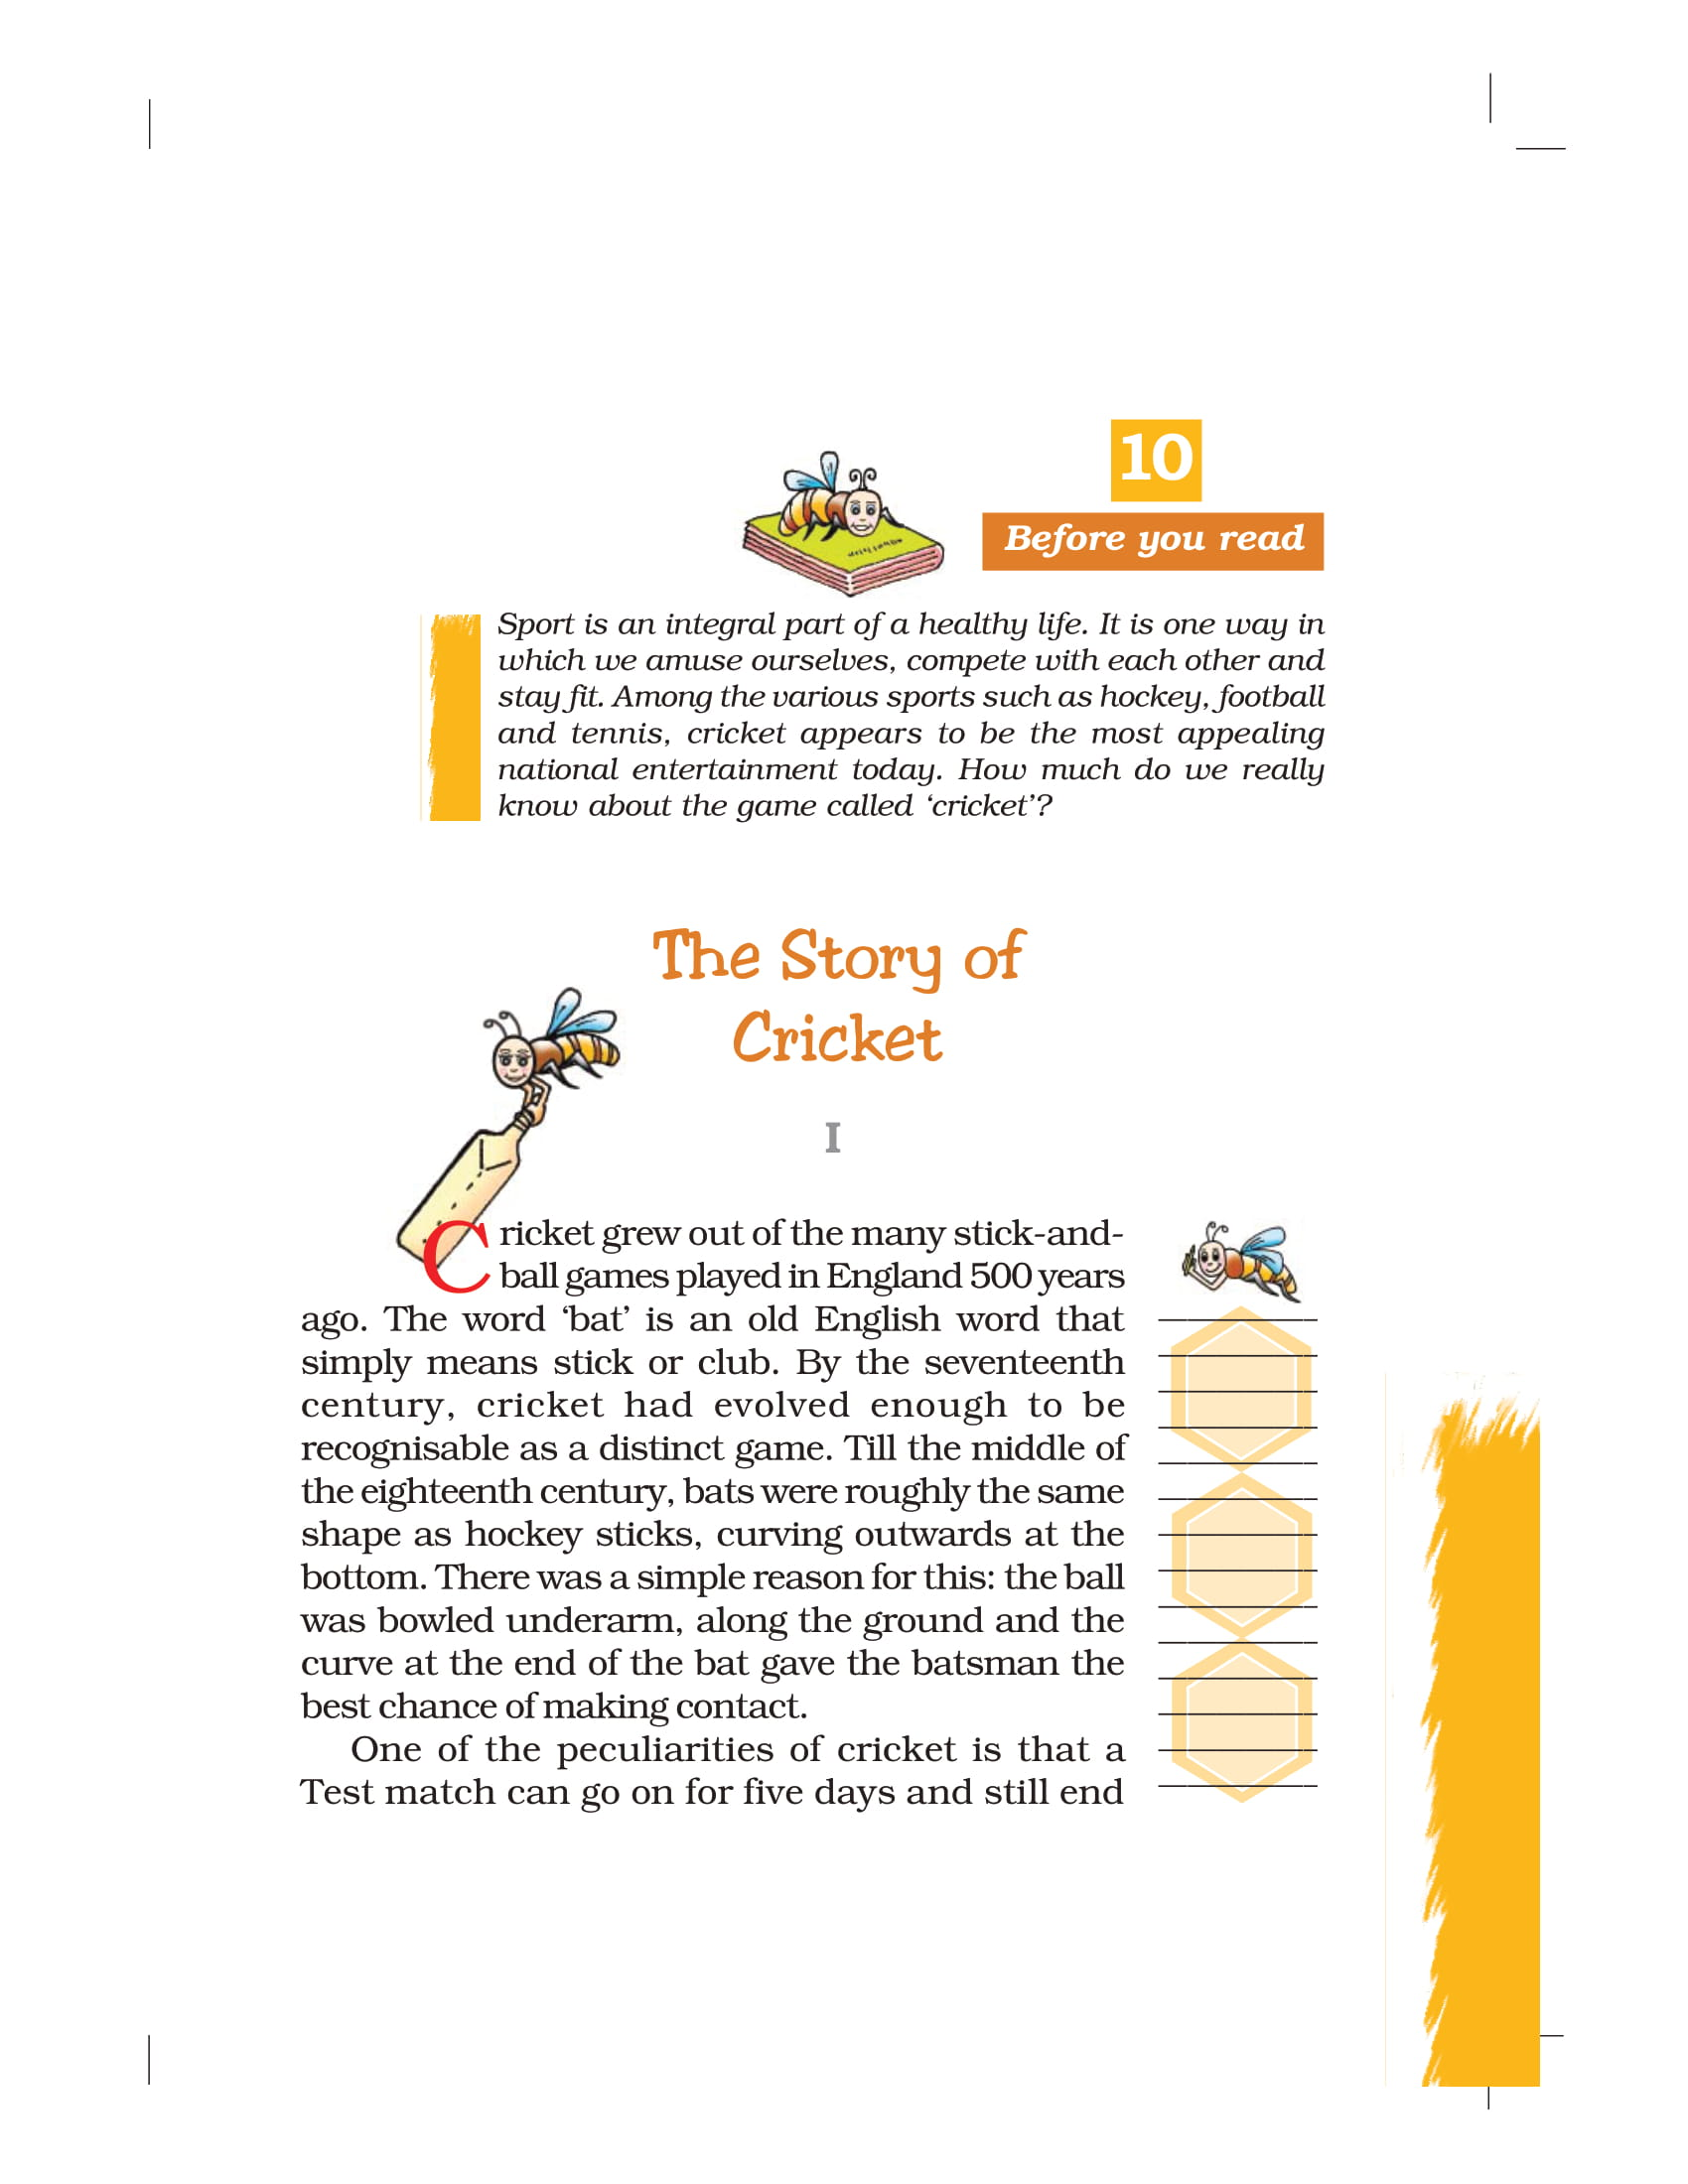 NCERT Book Class 7 English Honeycomb Chapter 10 The Story of Cricket